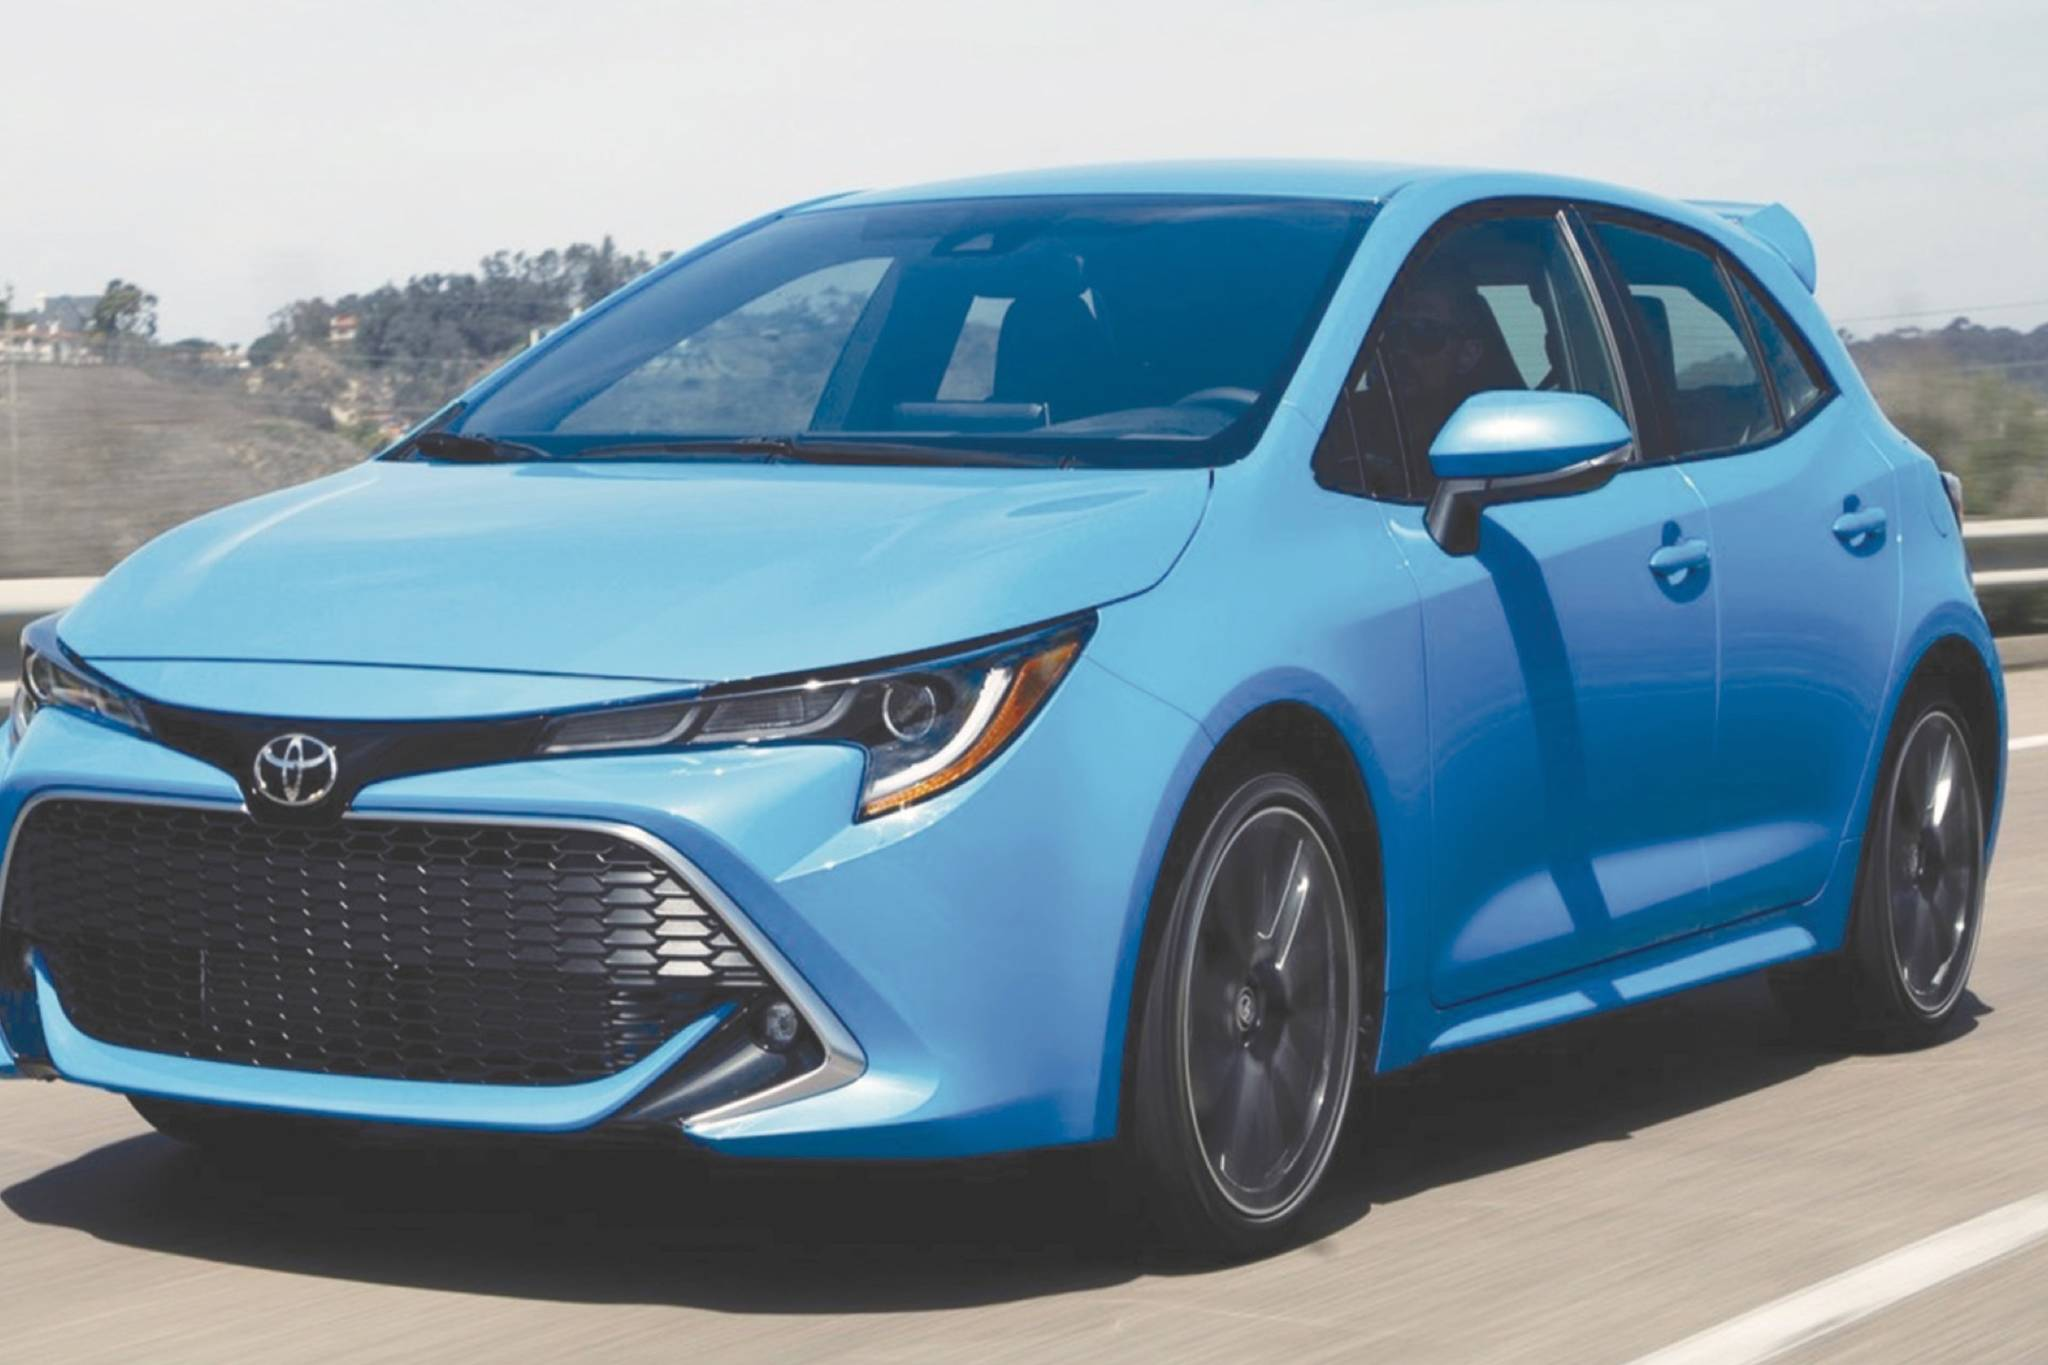 The Corolla GR will be based on the hatchback and will come with a 257-horsepower three-cylinder engine and a six-speed manual transmission. Photo: Toyota.